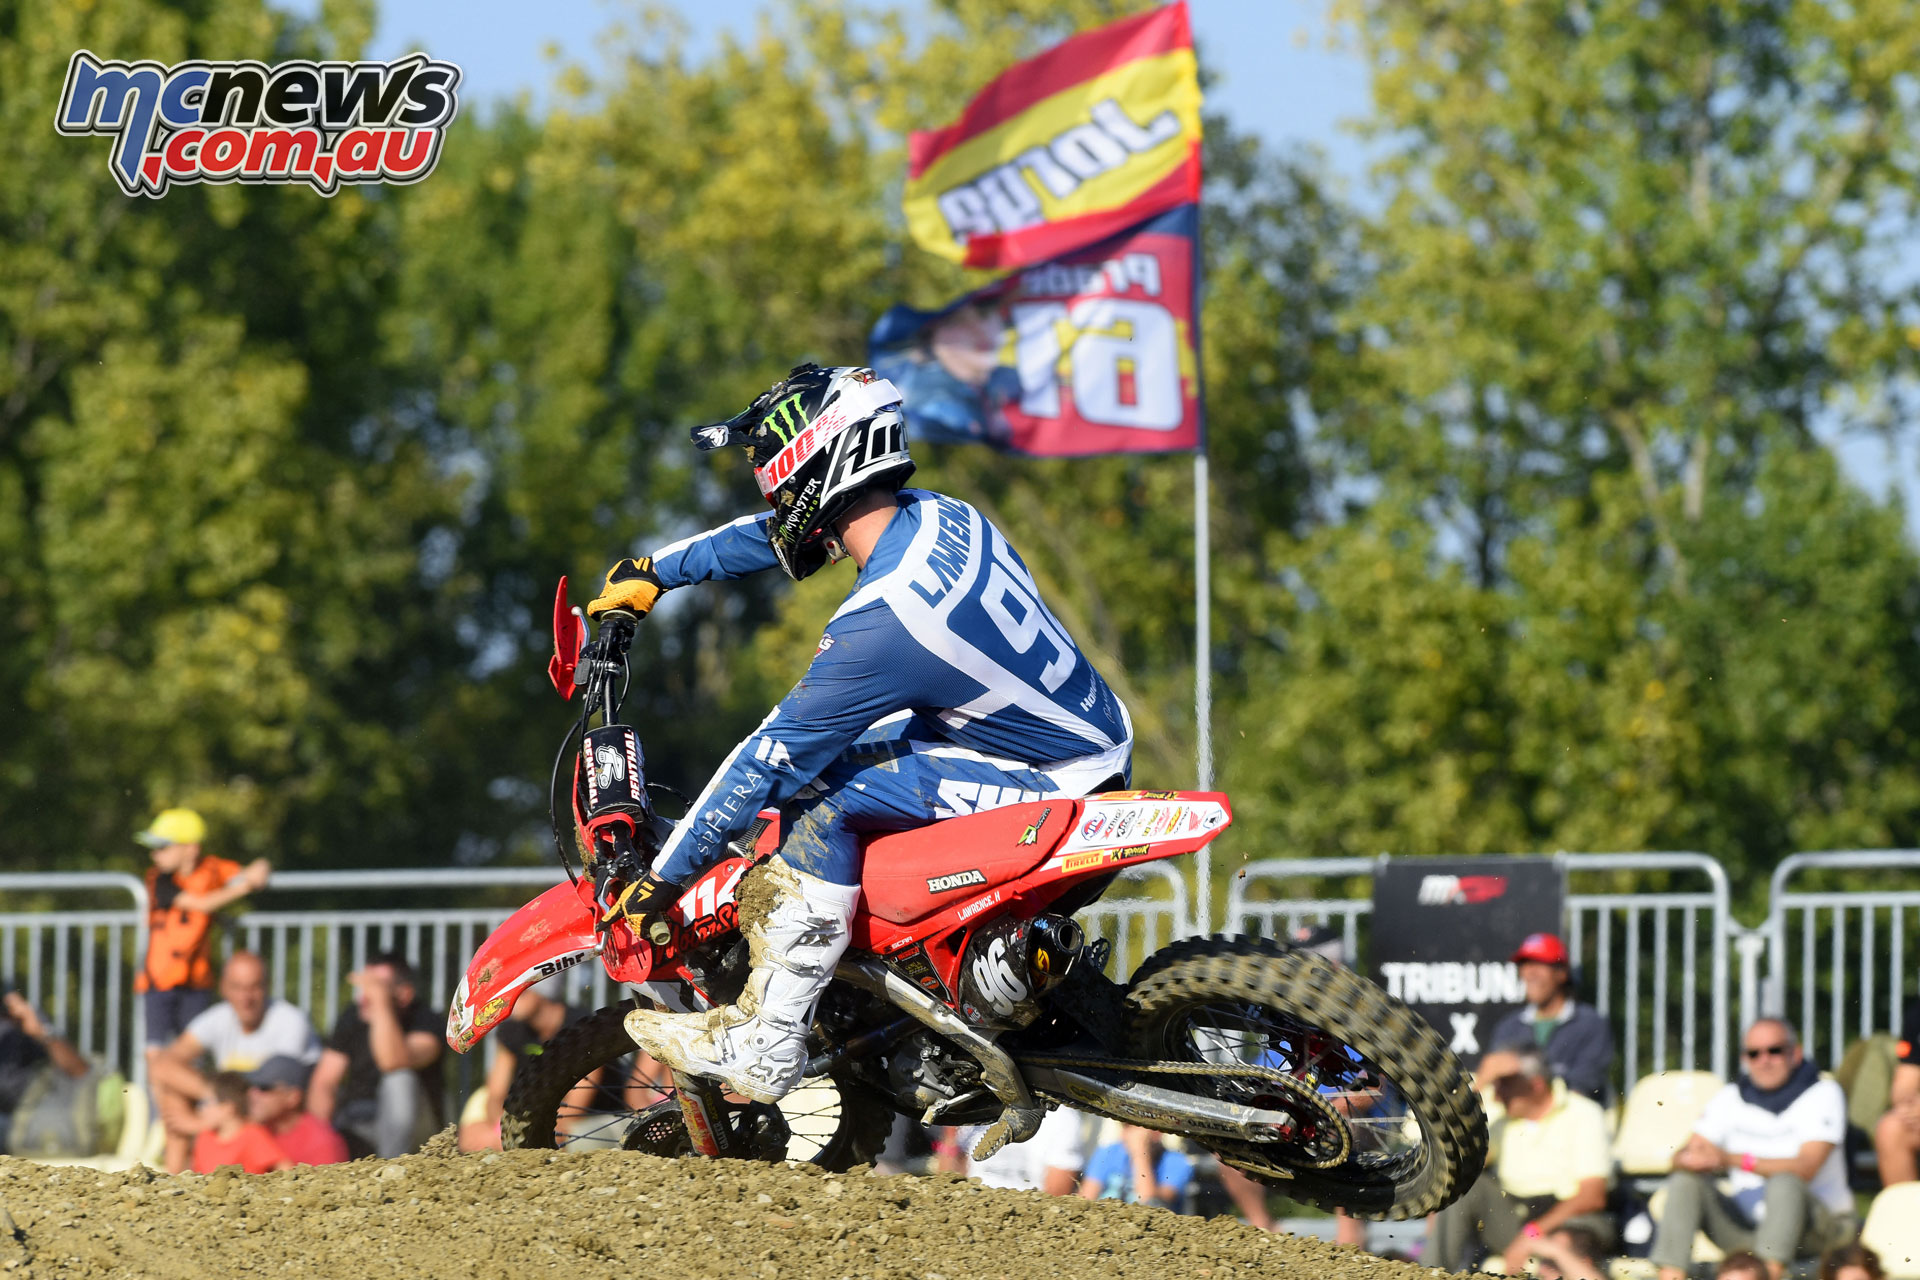 MXGP Rnd Italy Lawrence action